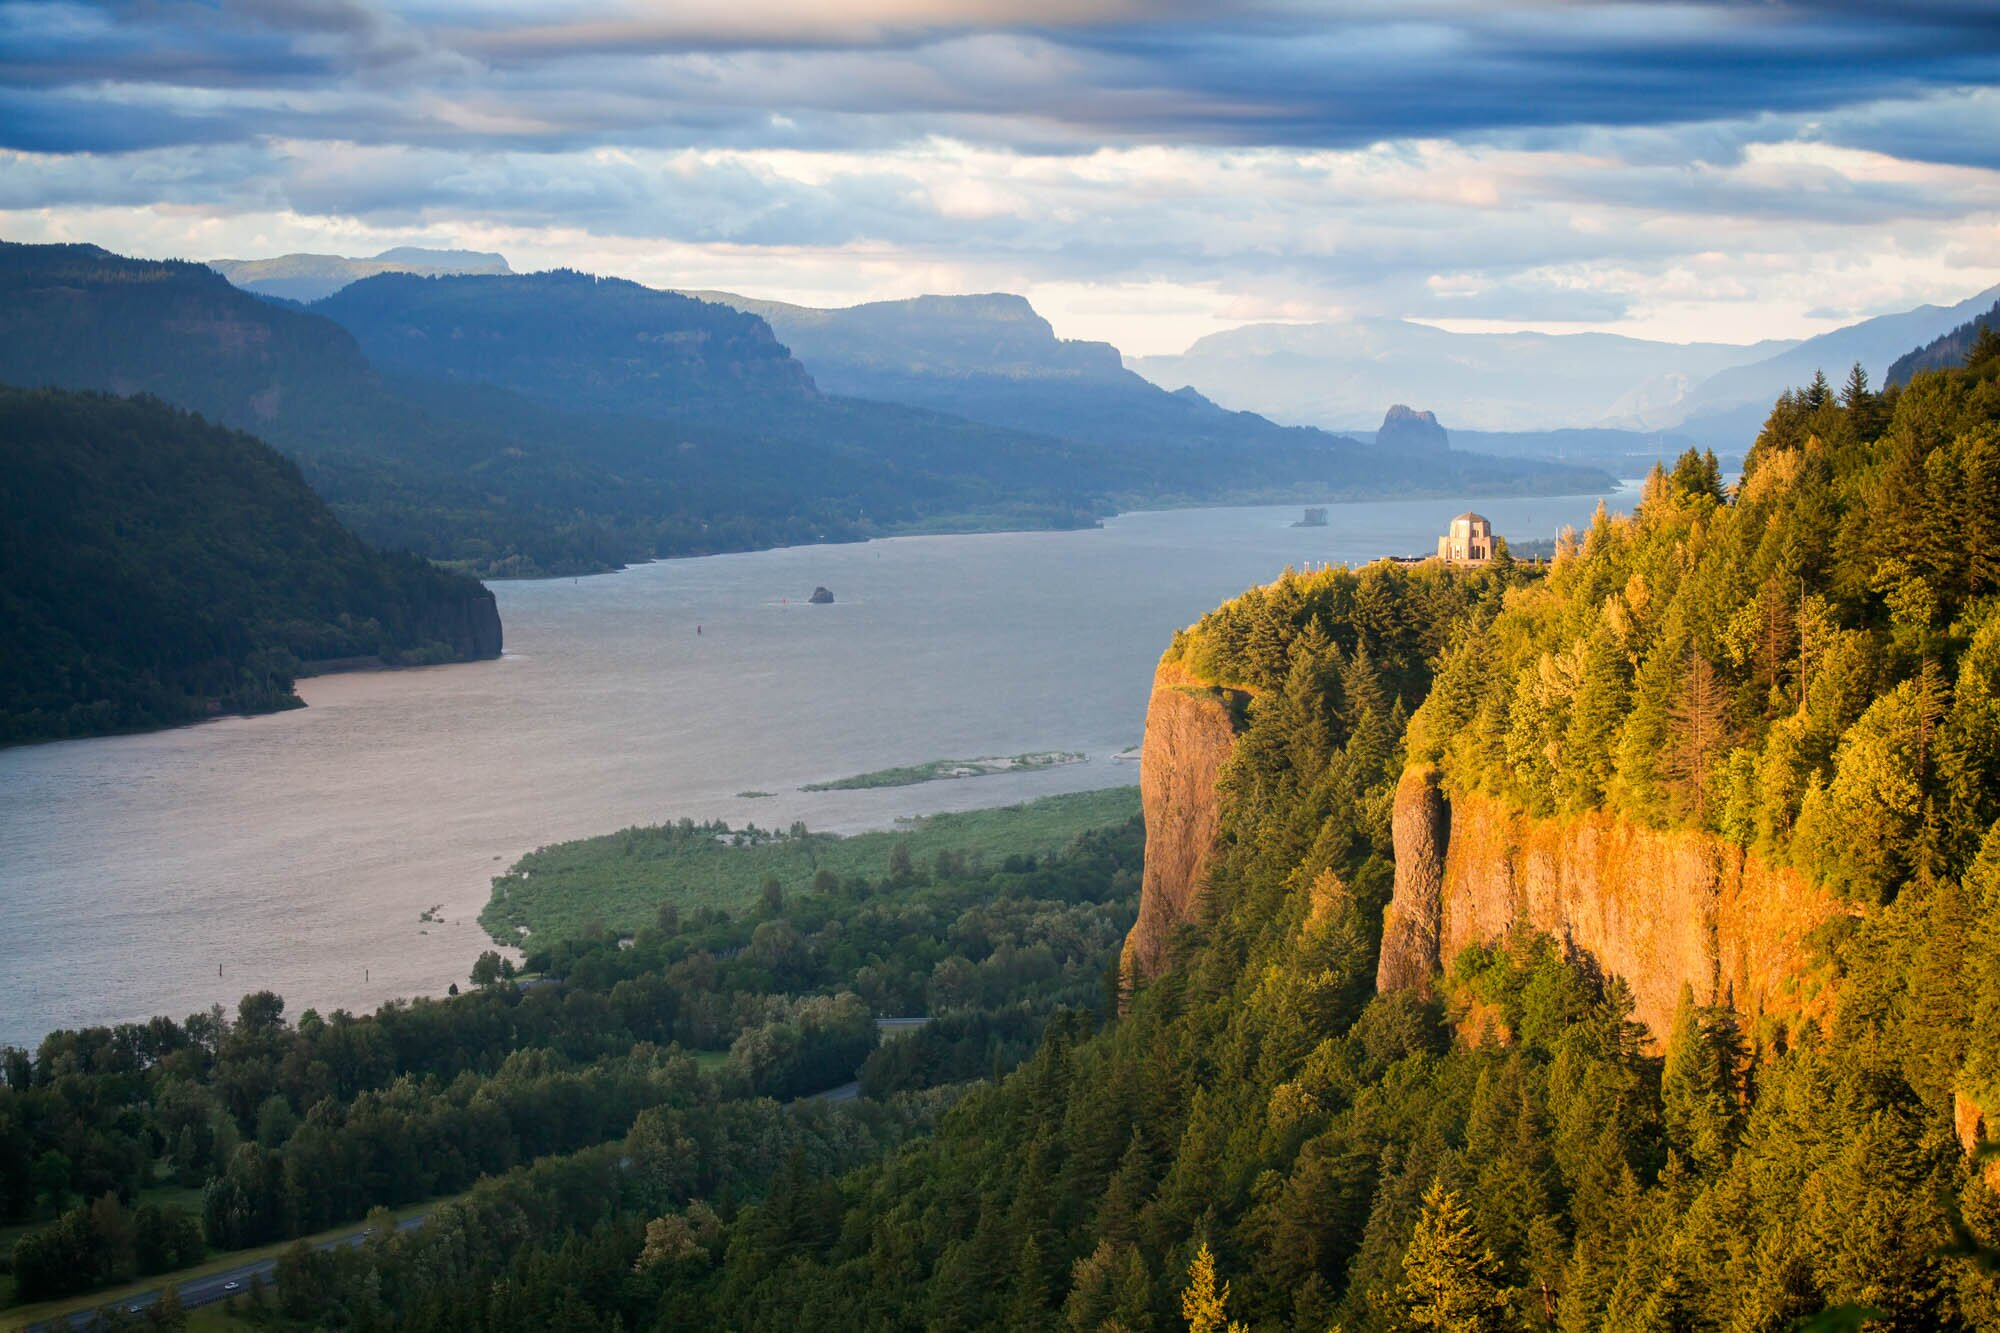 Crown Point overlooking the Columbia River and the Gorge